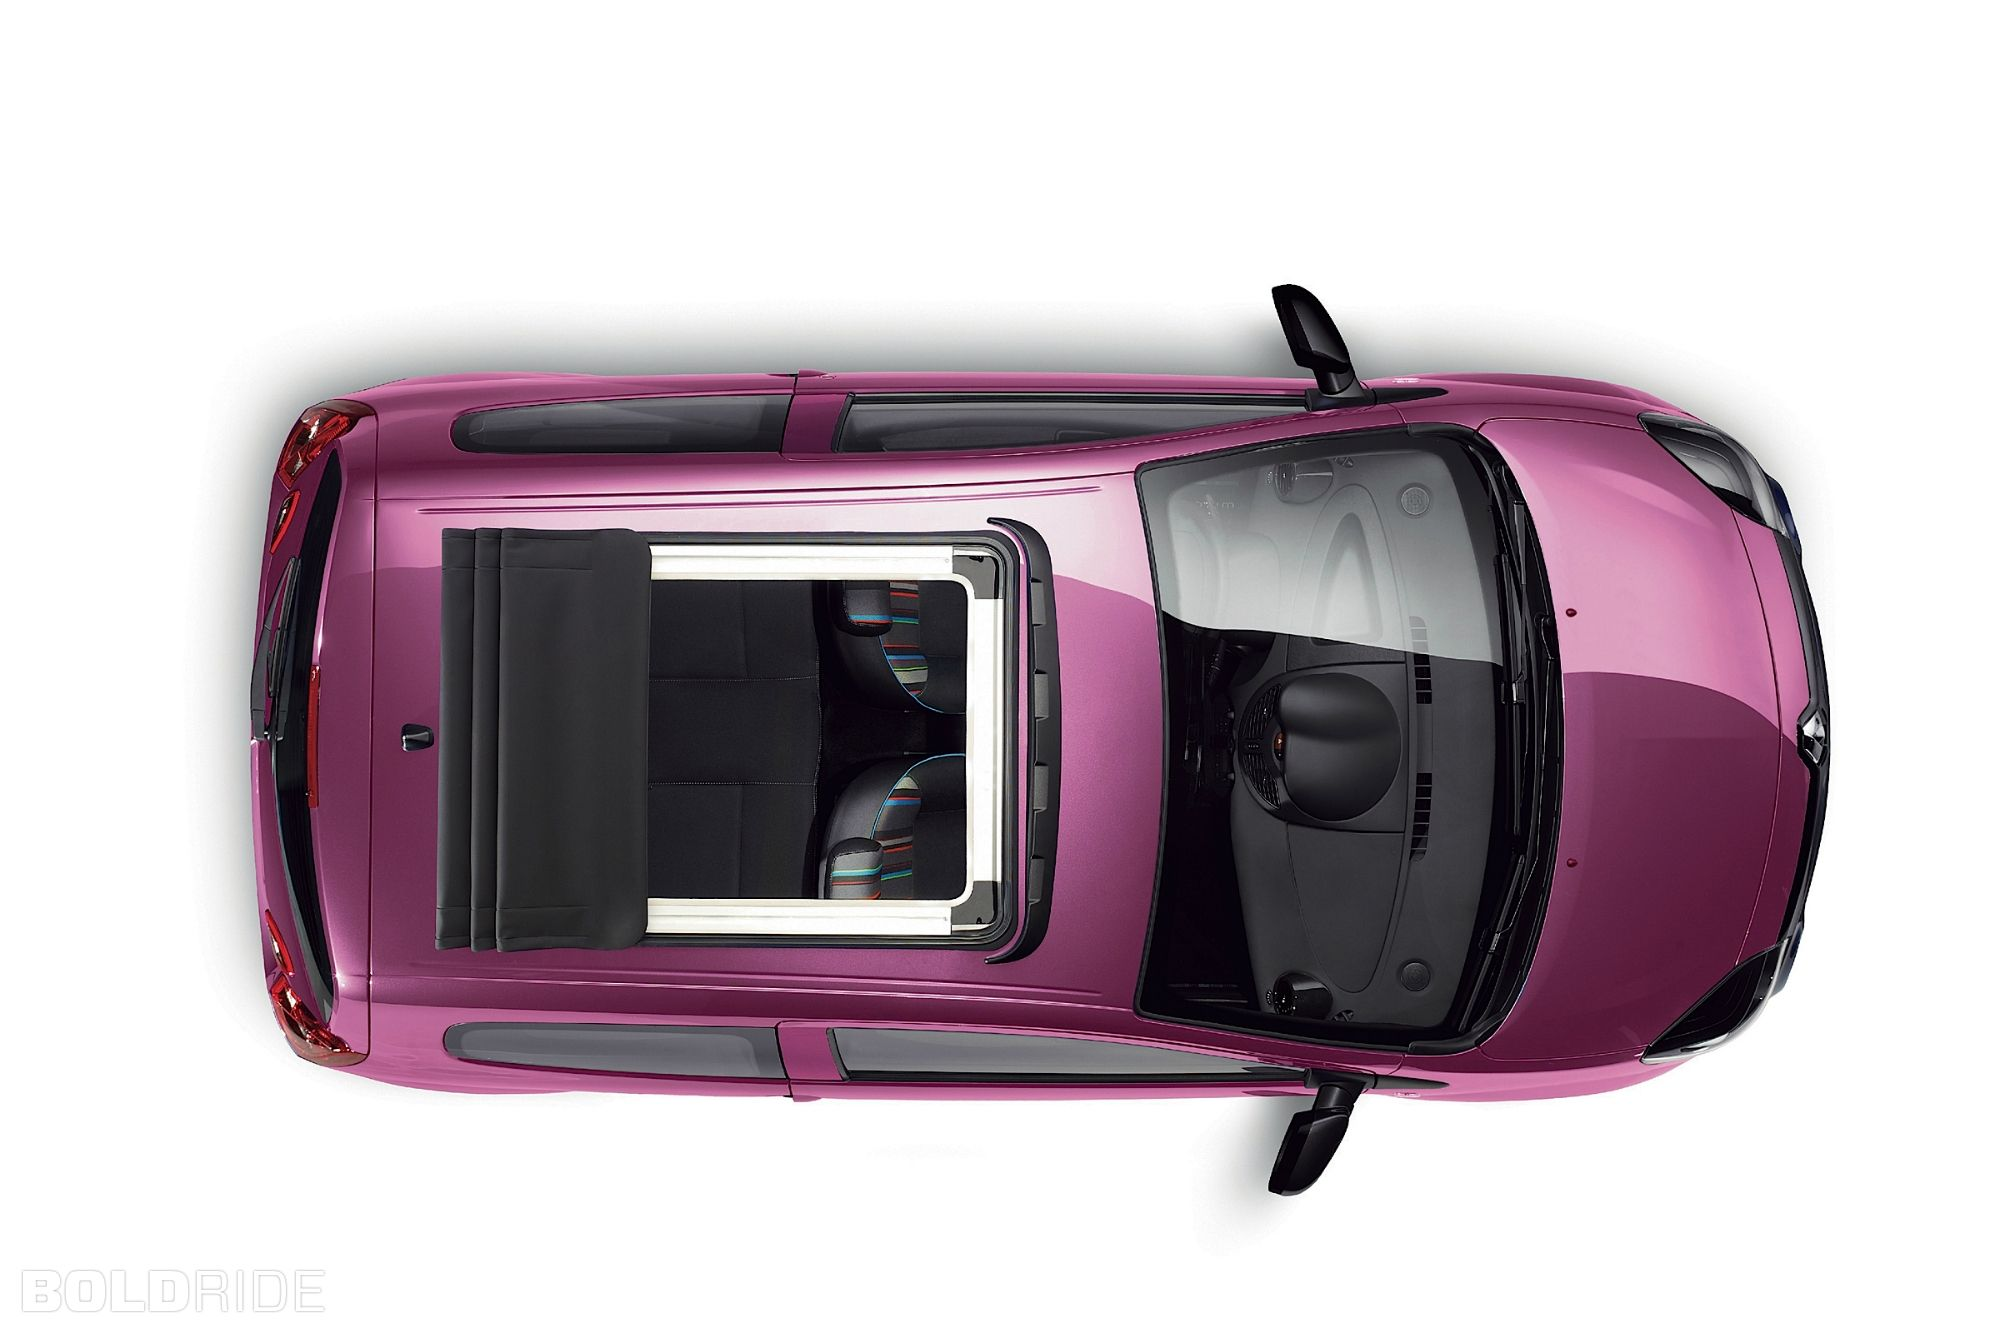 Renault Twingo Summertime Limited Edition Renault Summertime Electronic Products